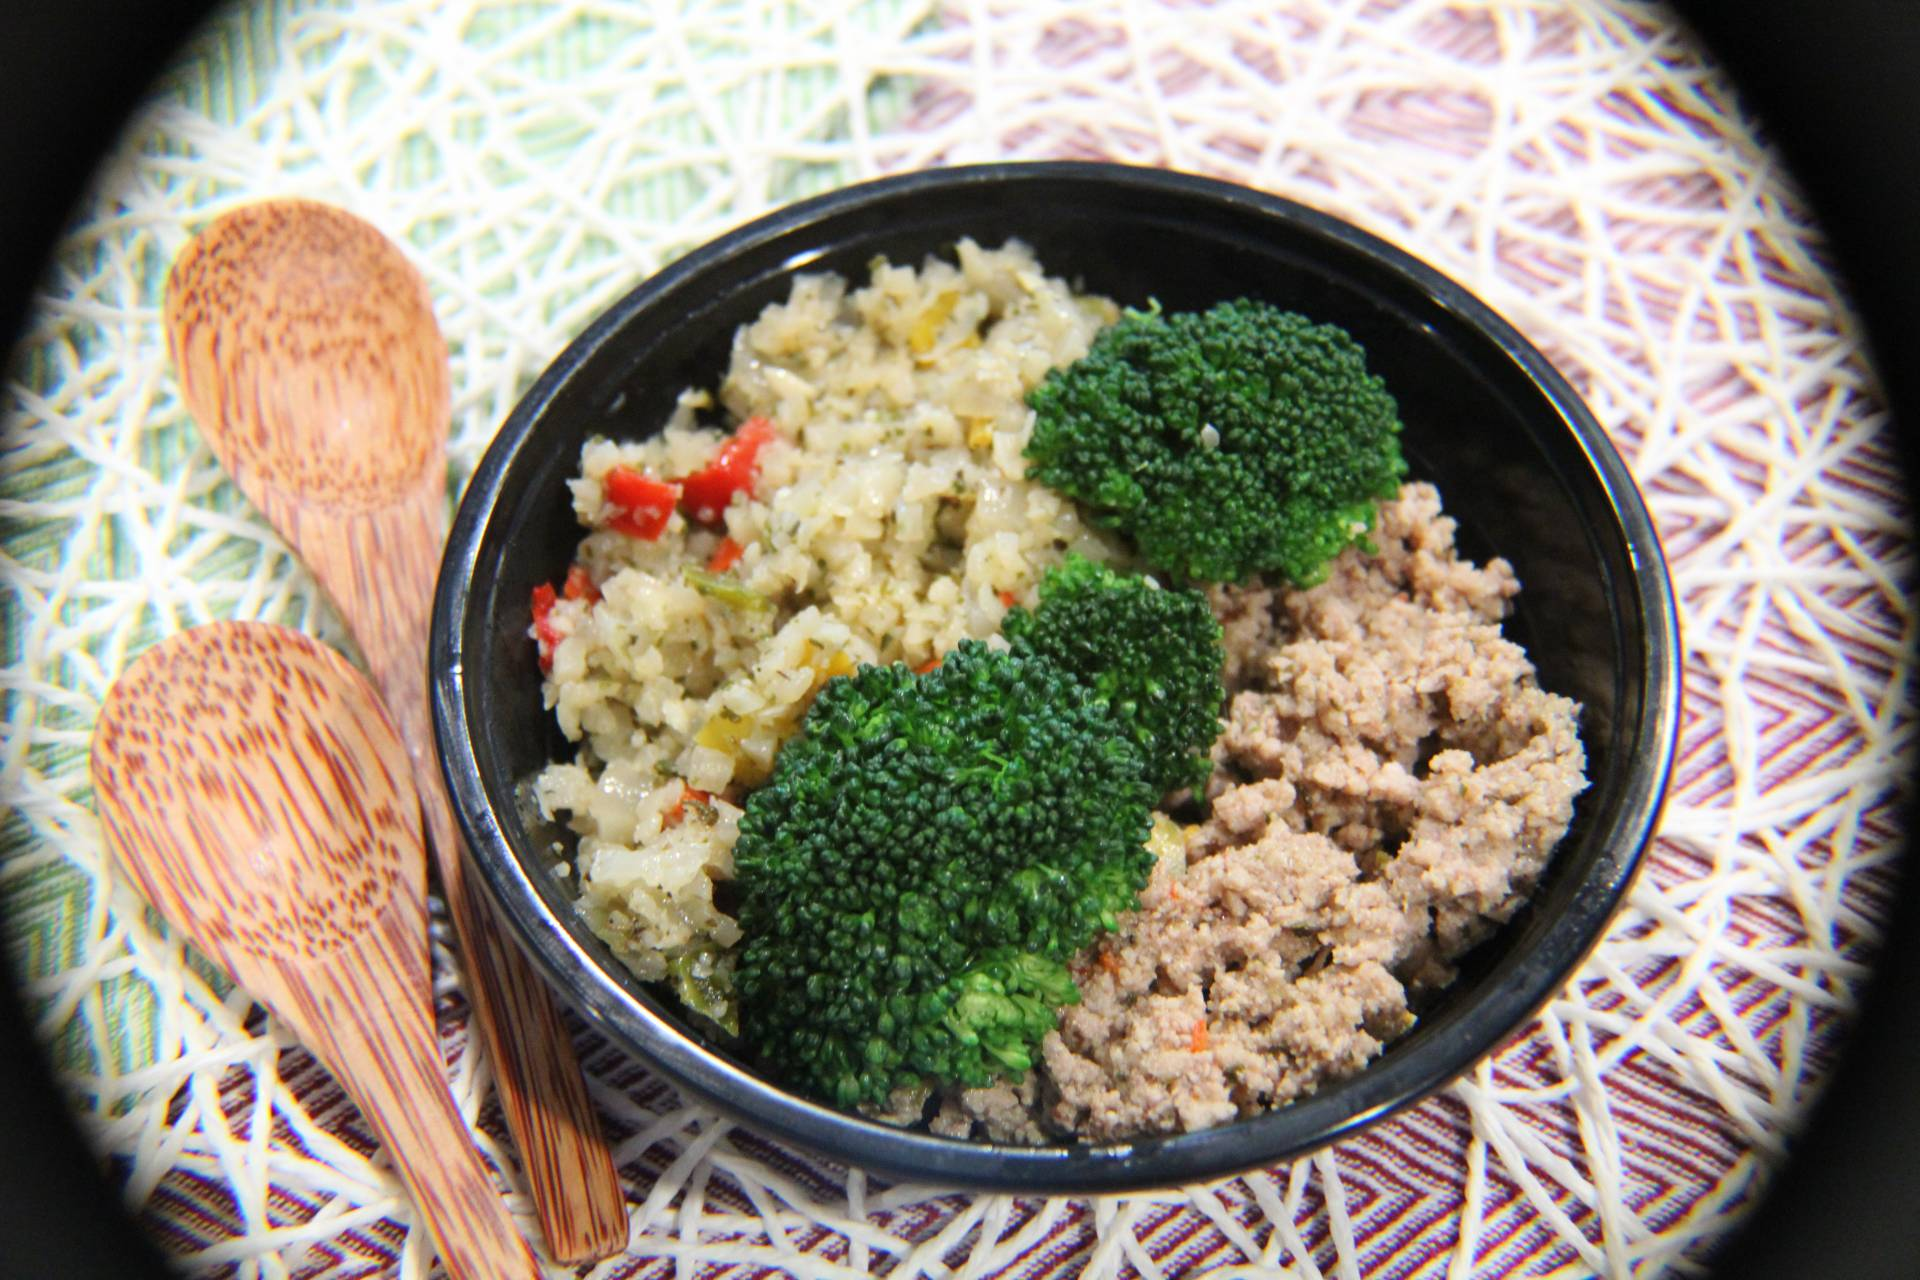 Ground Turkey, Cauliflower Rice and Broccoli